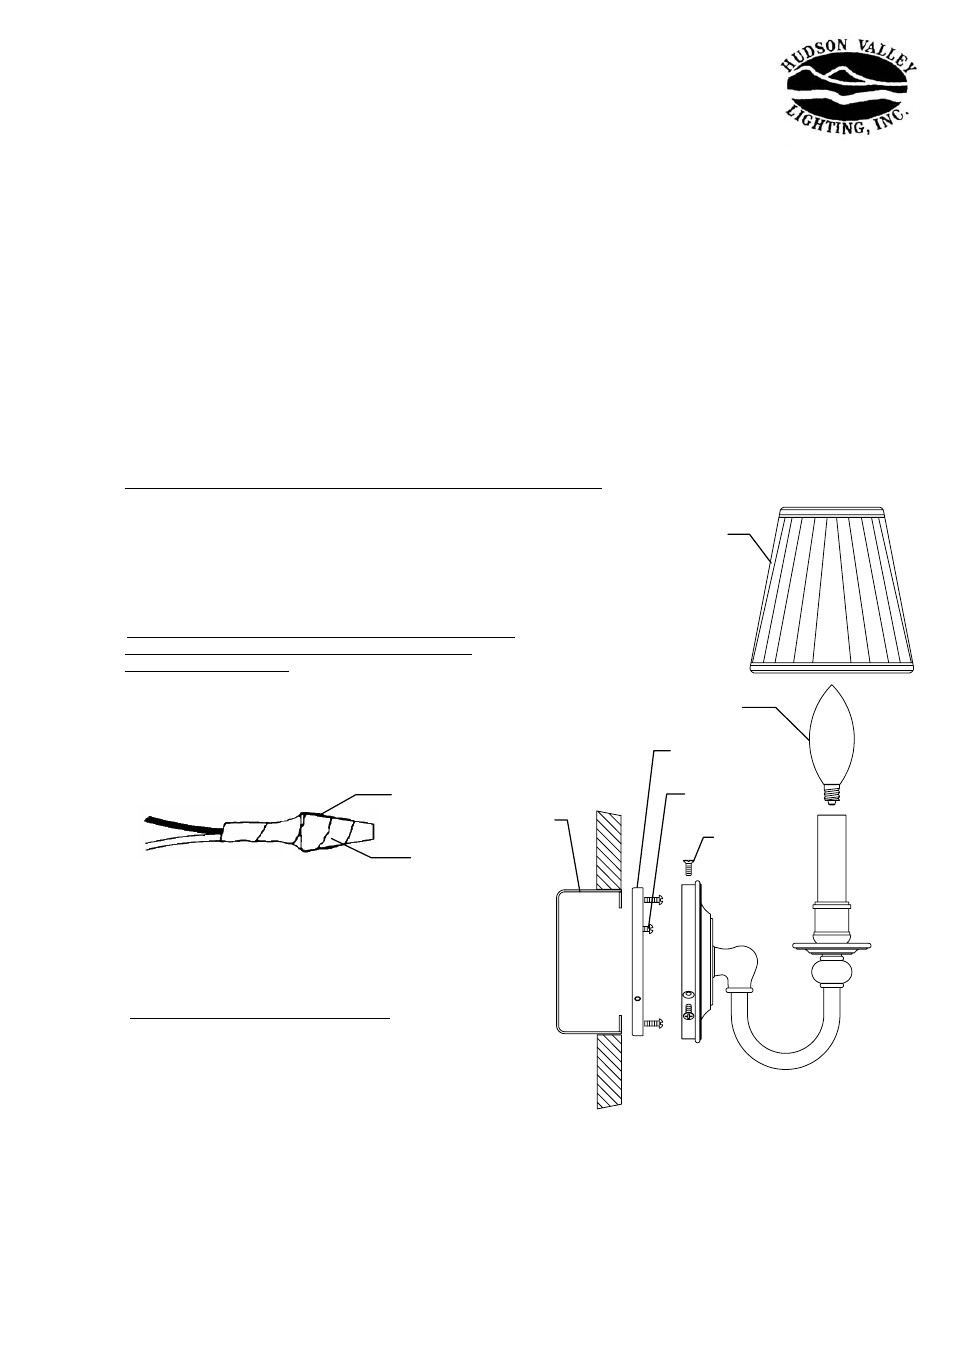 Hudson Valley Lighting Newport 1902 User Manual 1 Page Also For Recently Removed The Wire Nuts On Two Lights Controlled By 1901